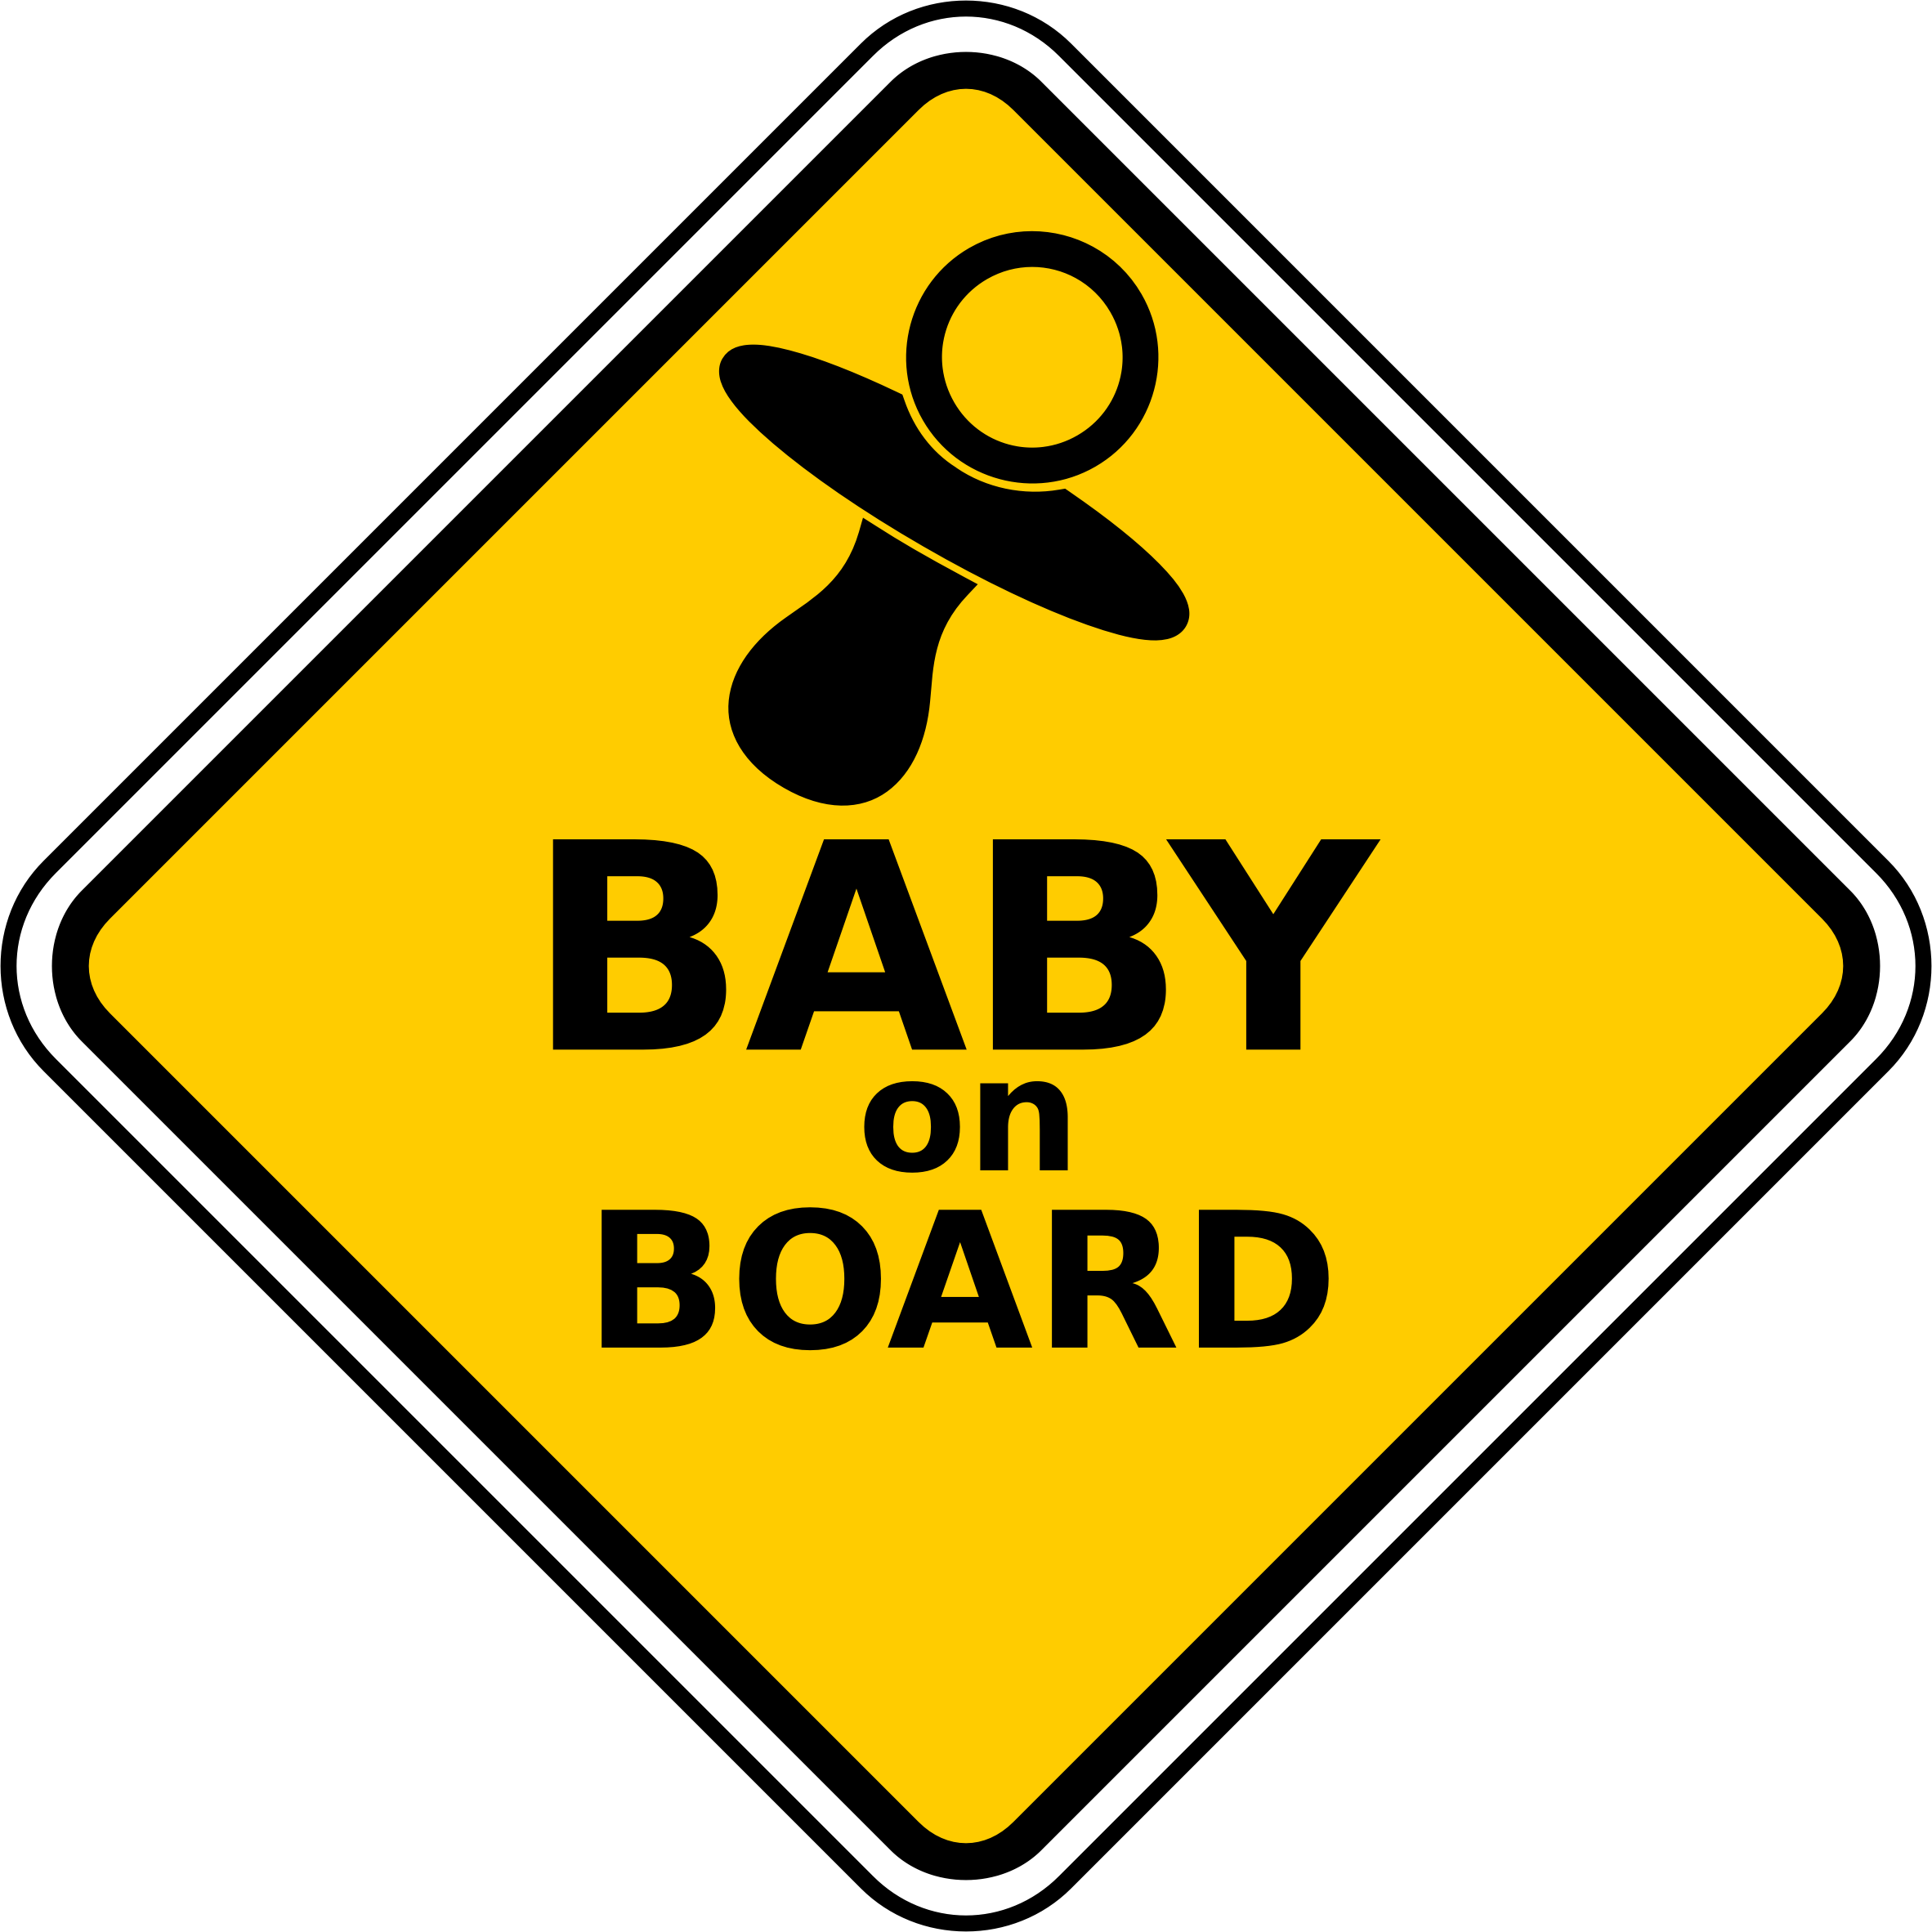 Baby On Board by Robert Ingil